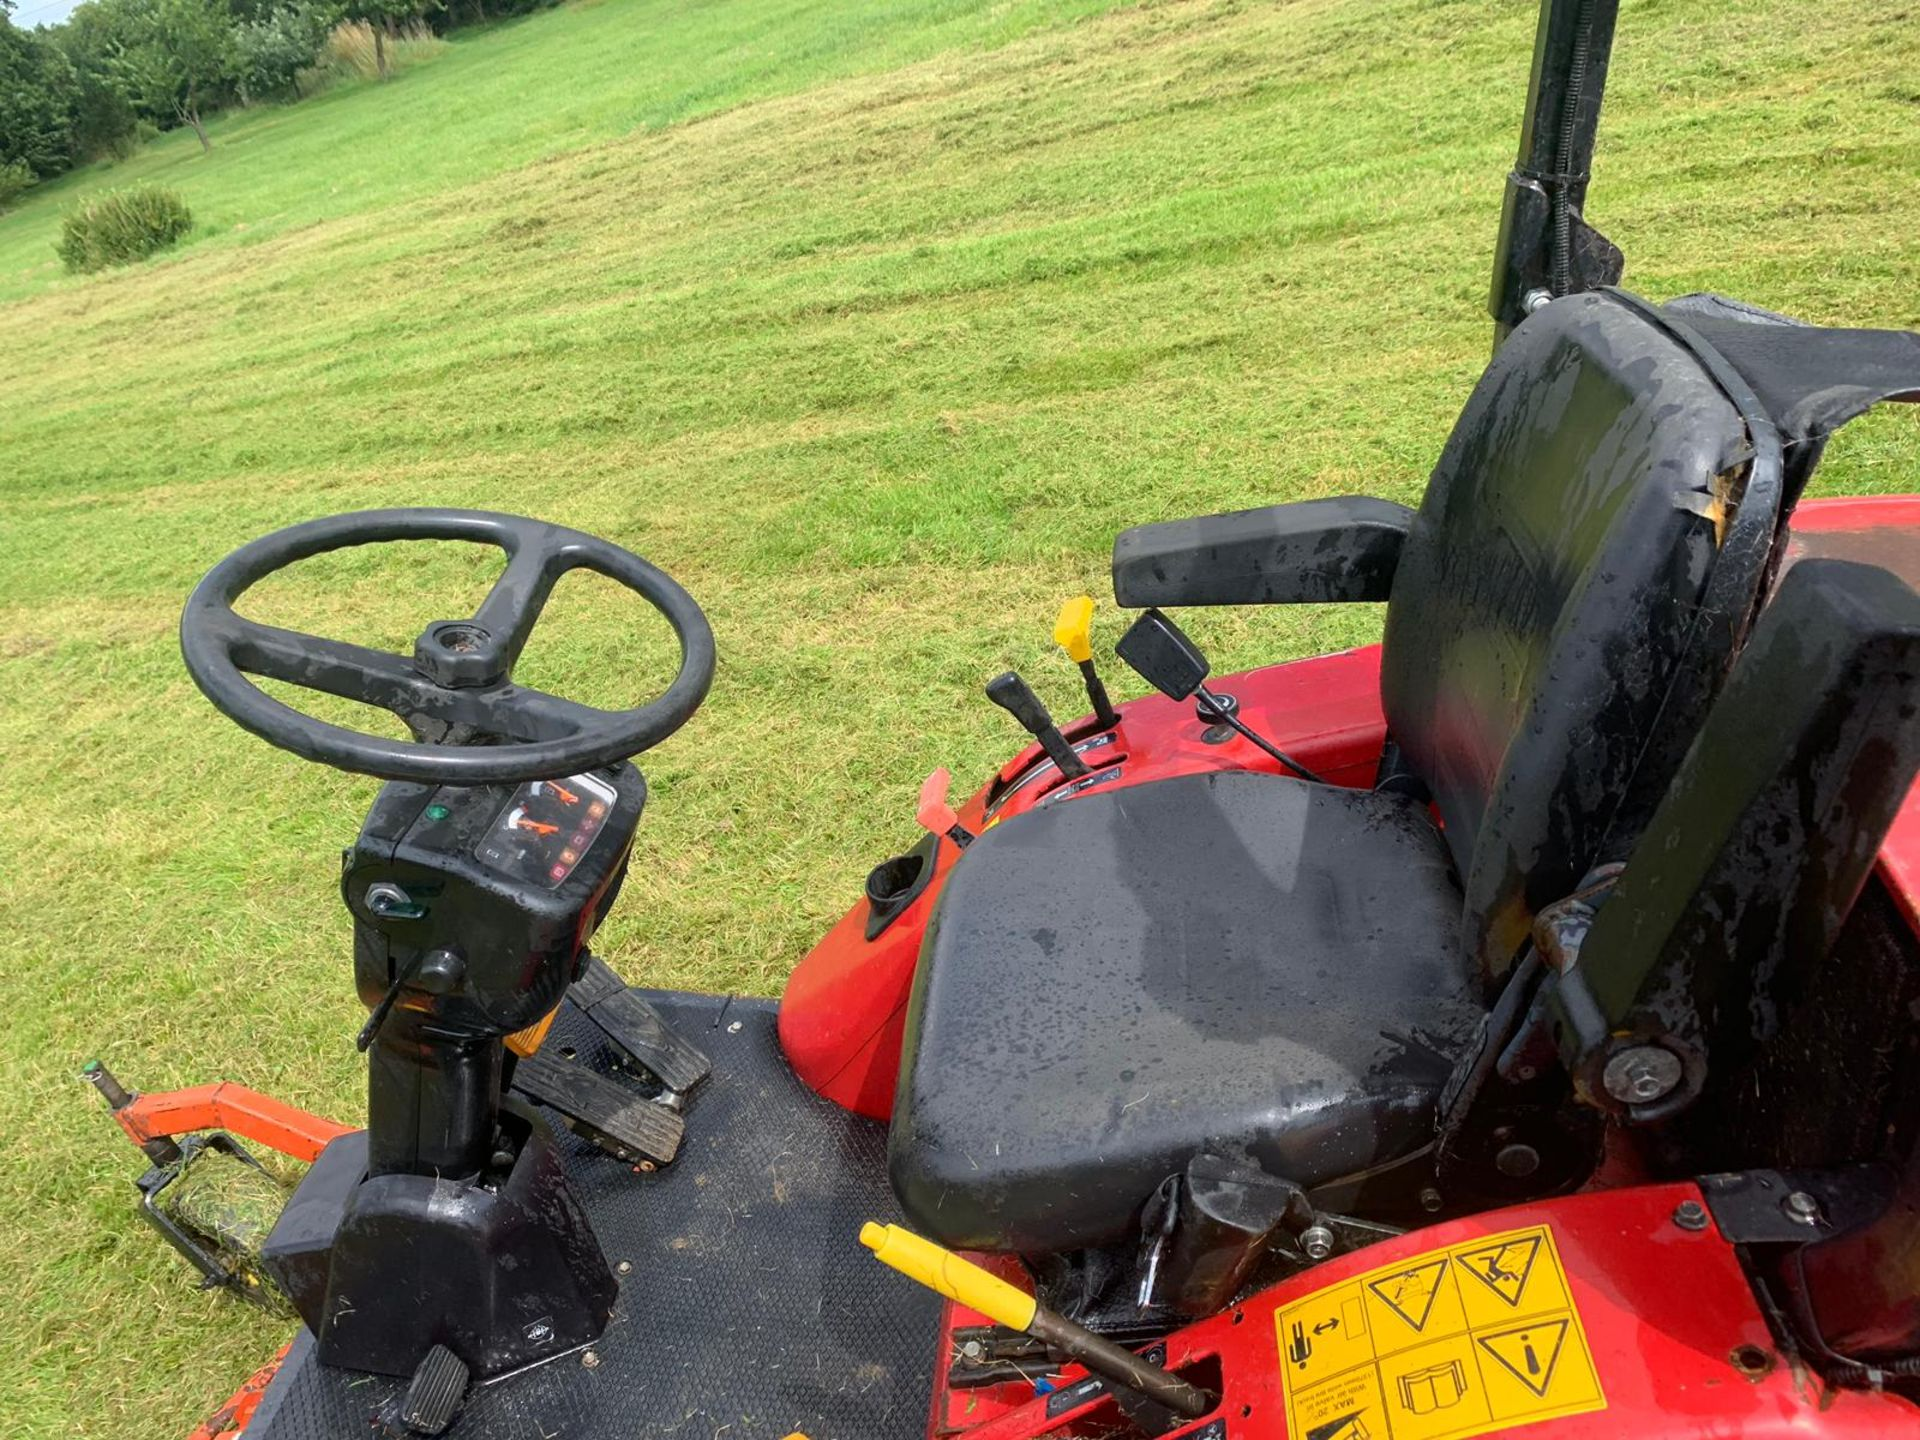 Lot 250 - 2013 SHIBAURA CM374 AUTO 4WD OUT FRONT ROTARY MOWER, RUNS, WORKS AND CUTS *PLUS VAT*